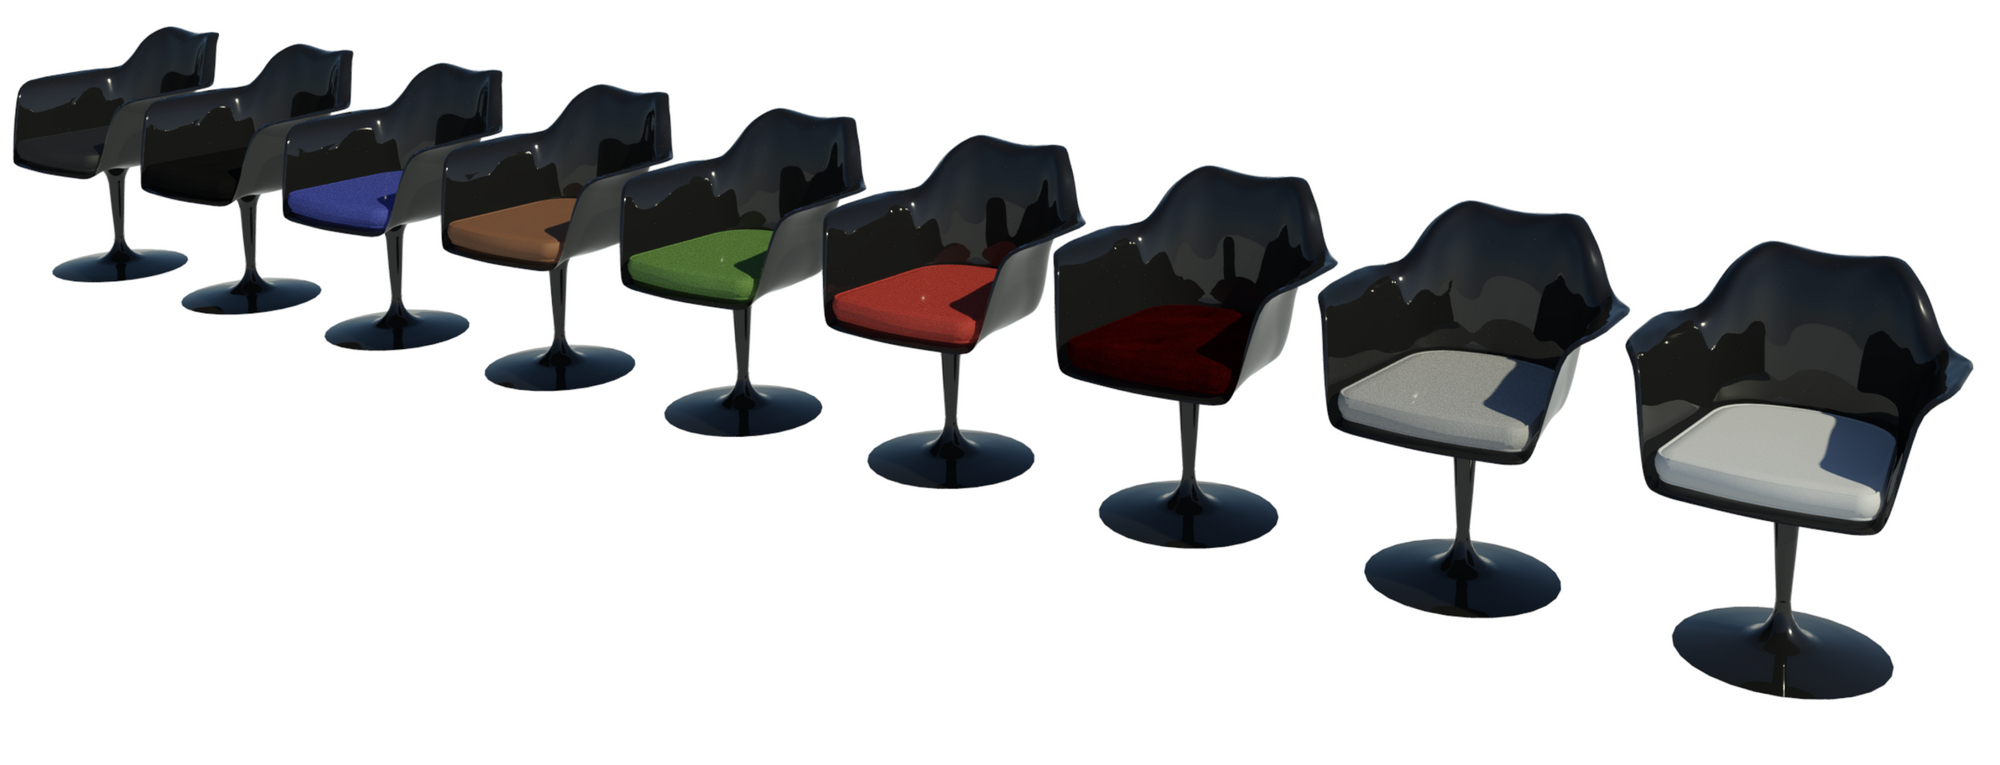 Revit raytrace showing nine black body types of Tulip chair.